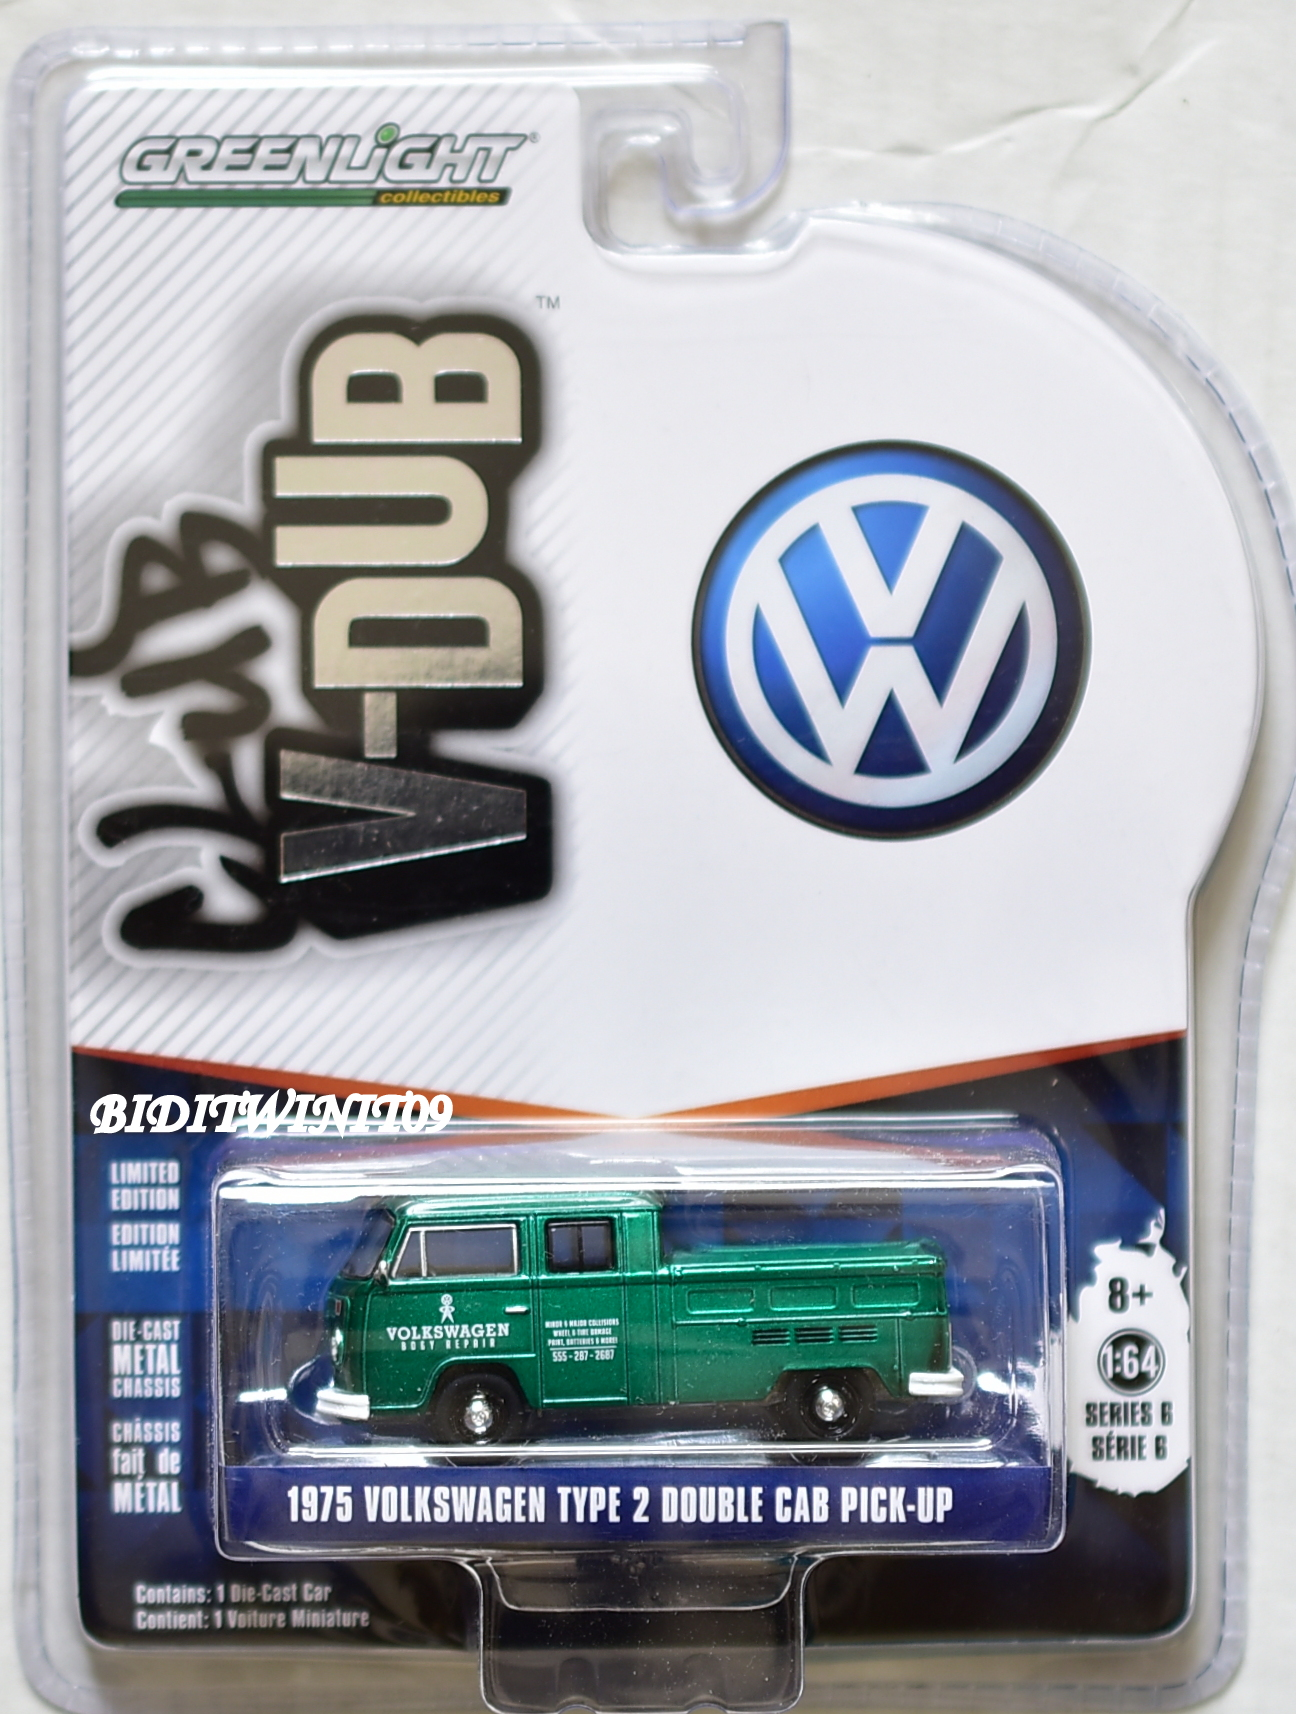 GREENLIGHT CLUB V-DUB GREEN MACHINE 1975 VOLKSWAGEN TYPE 2 DOUBLE CAB PICK-UP E+